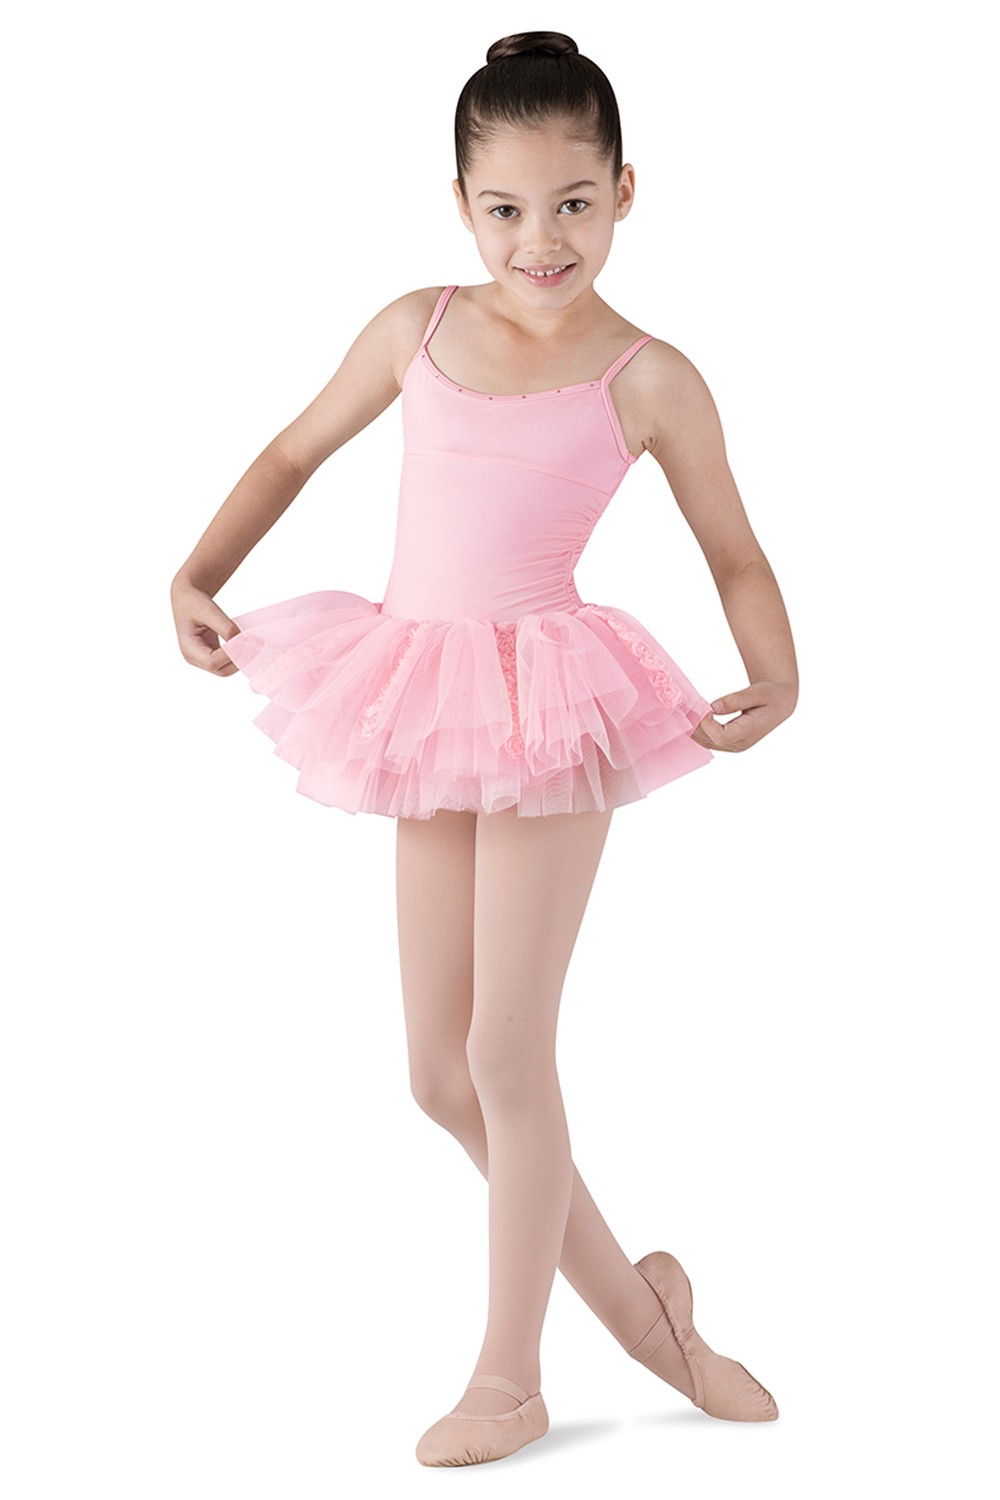 Miliani Children's Dance Leotards